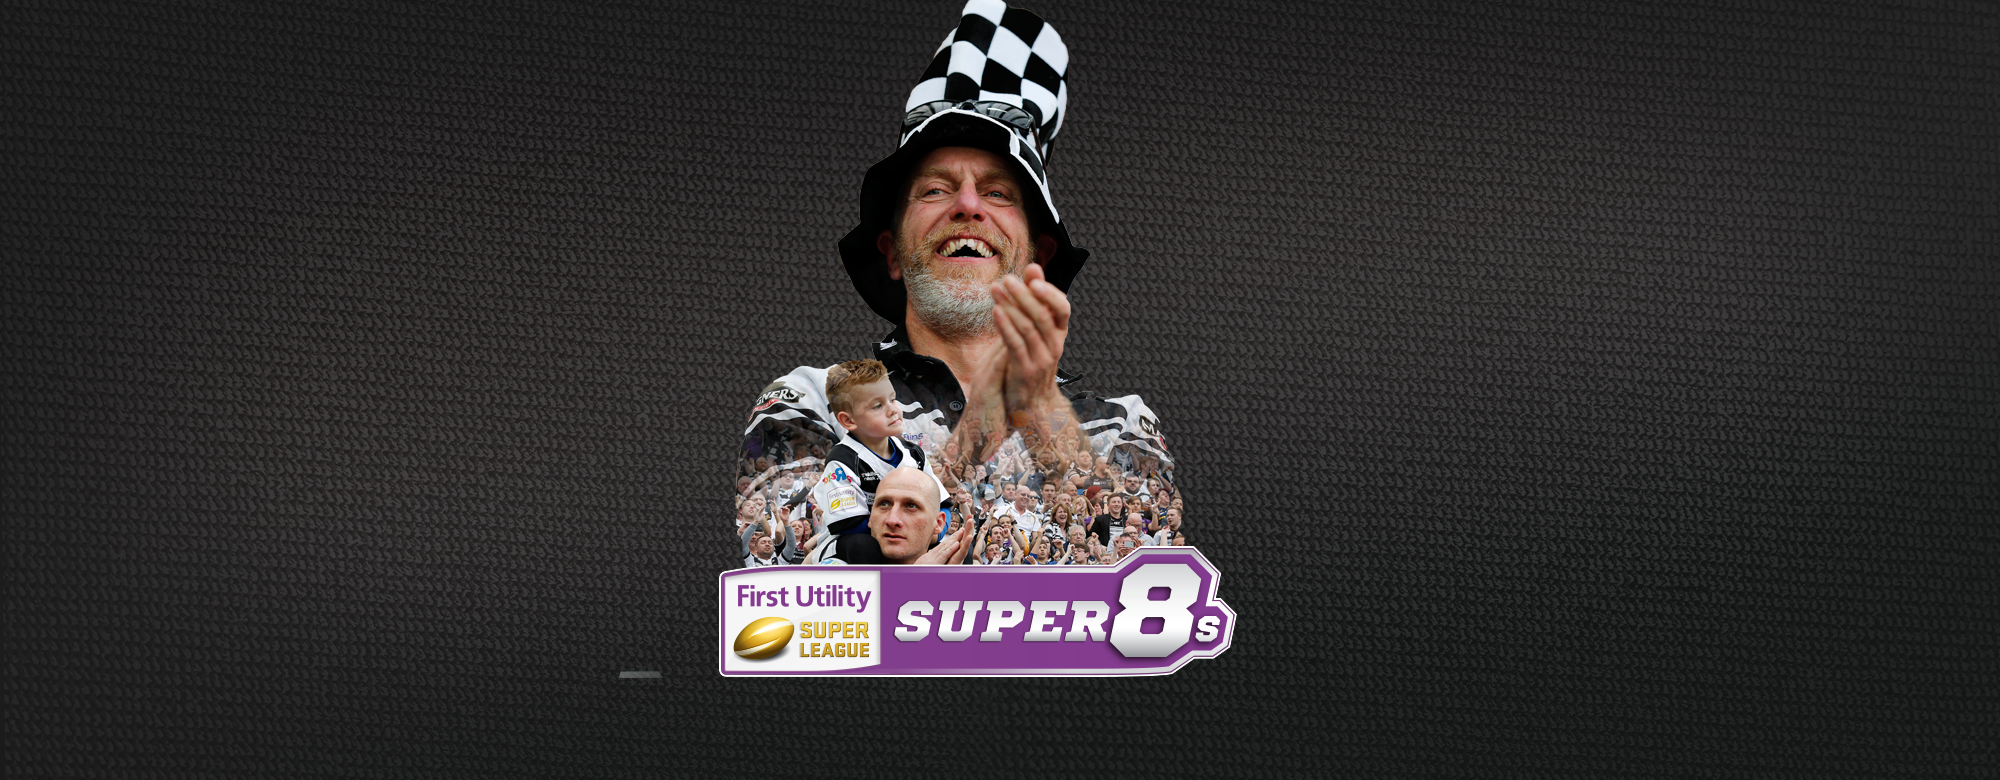 Be part of it! Super8s four game ticket bundle!